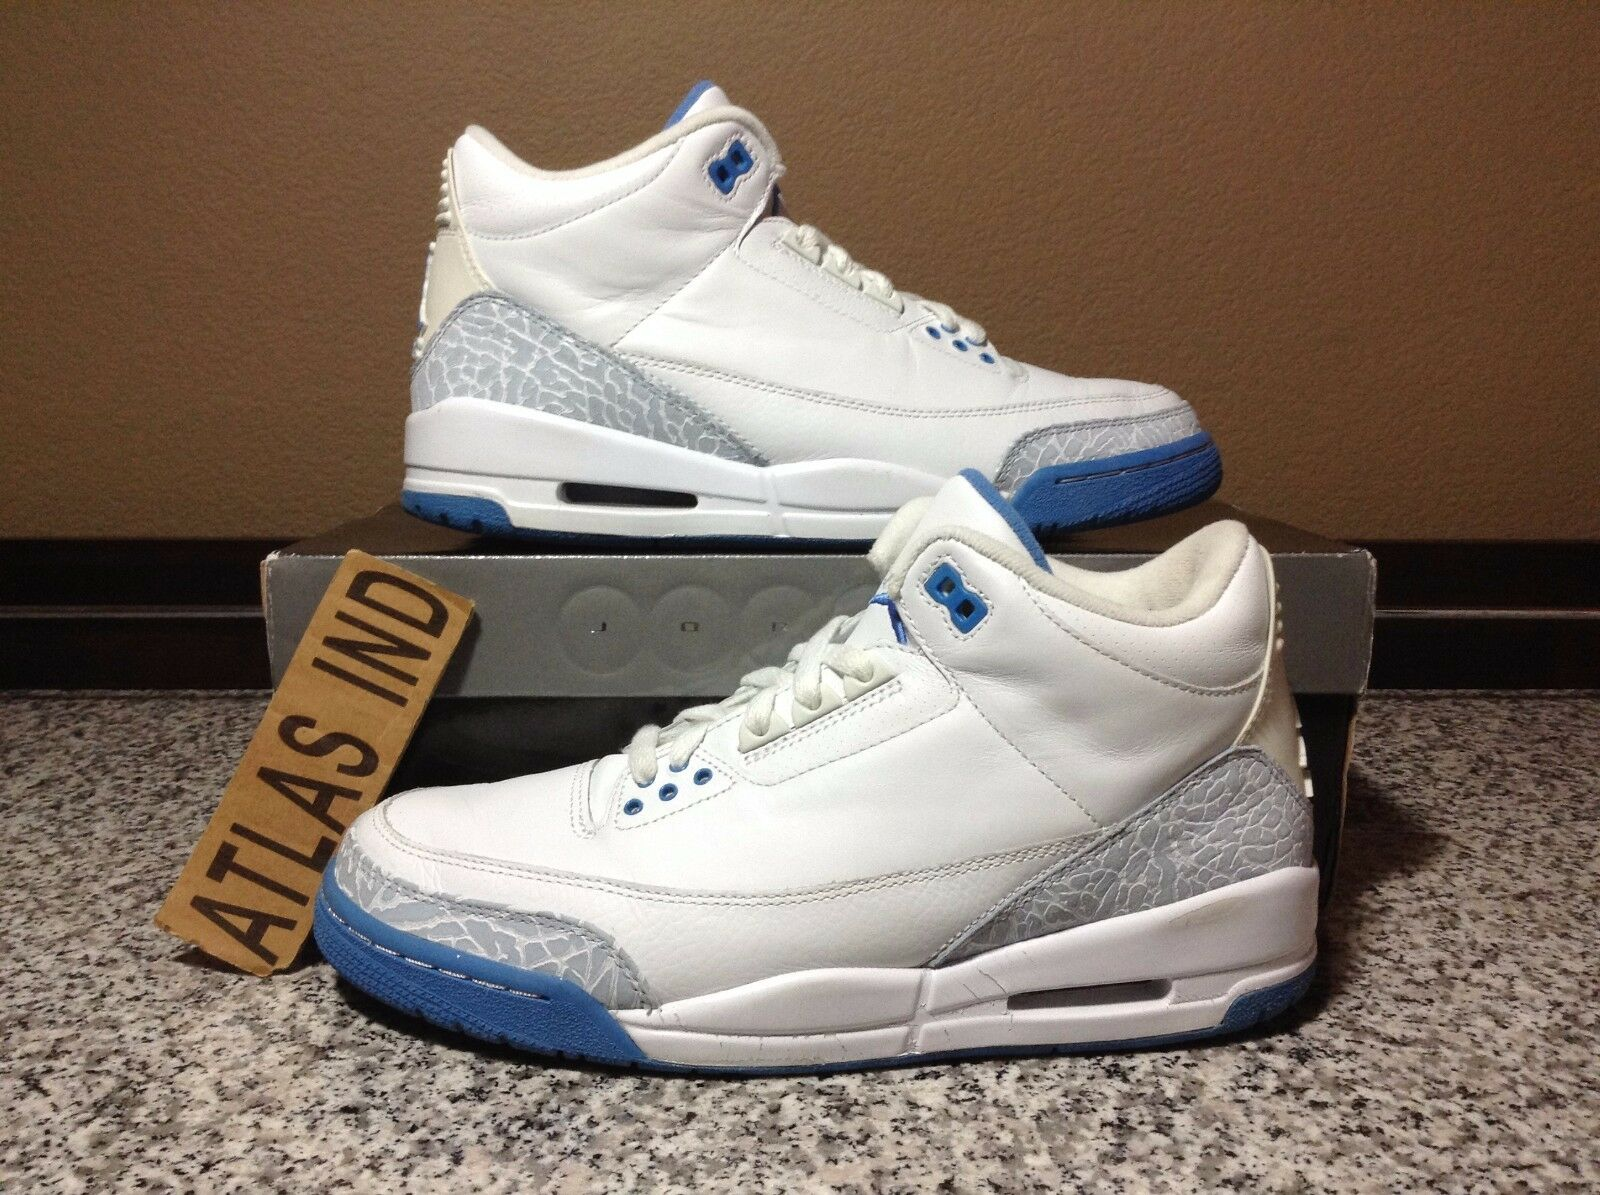 AIR JORDAN 3 RETRO Harbor Blue White Nike III 1 4 5 6 7 8 11 Cement WMNS 2007 10 Cheap and beautiful fashion